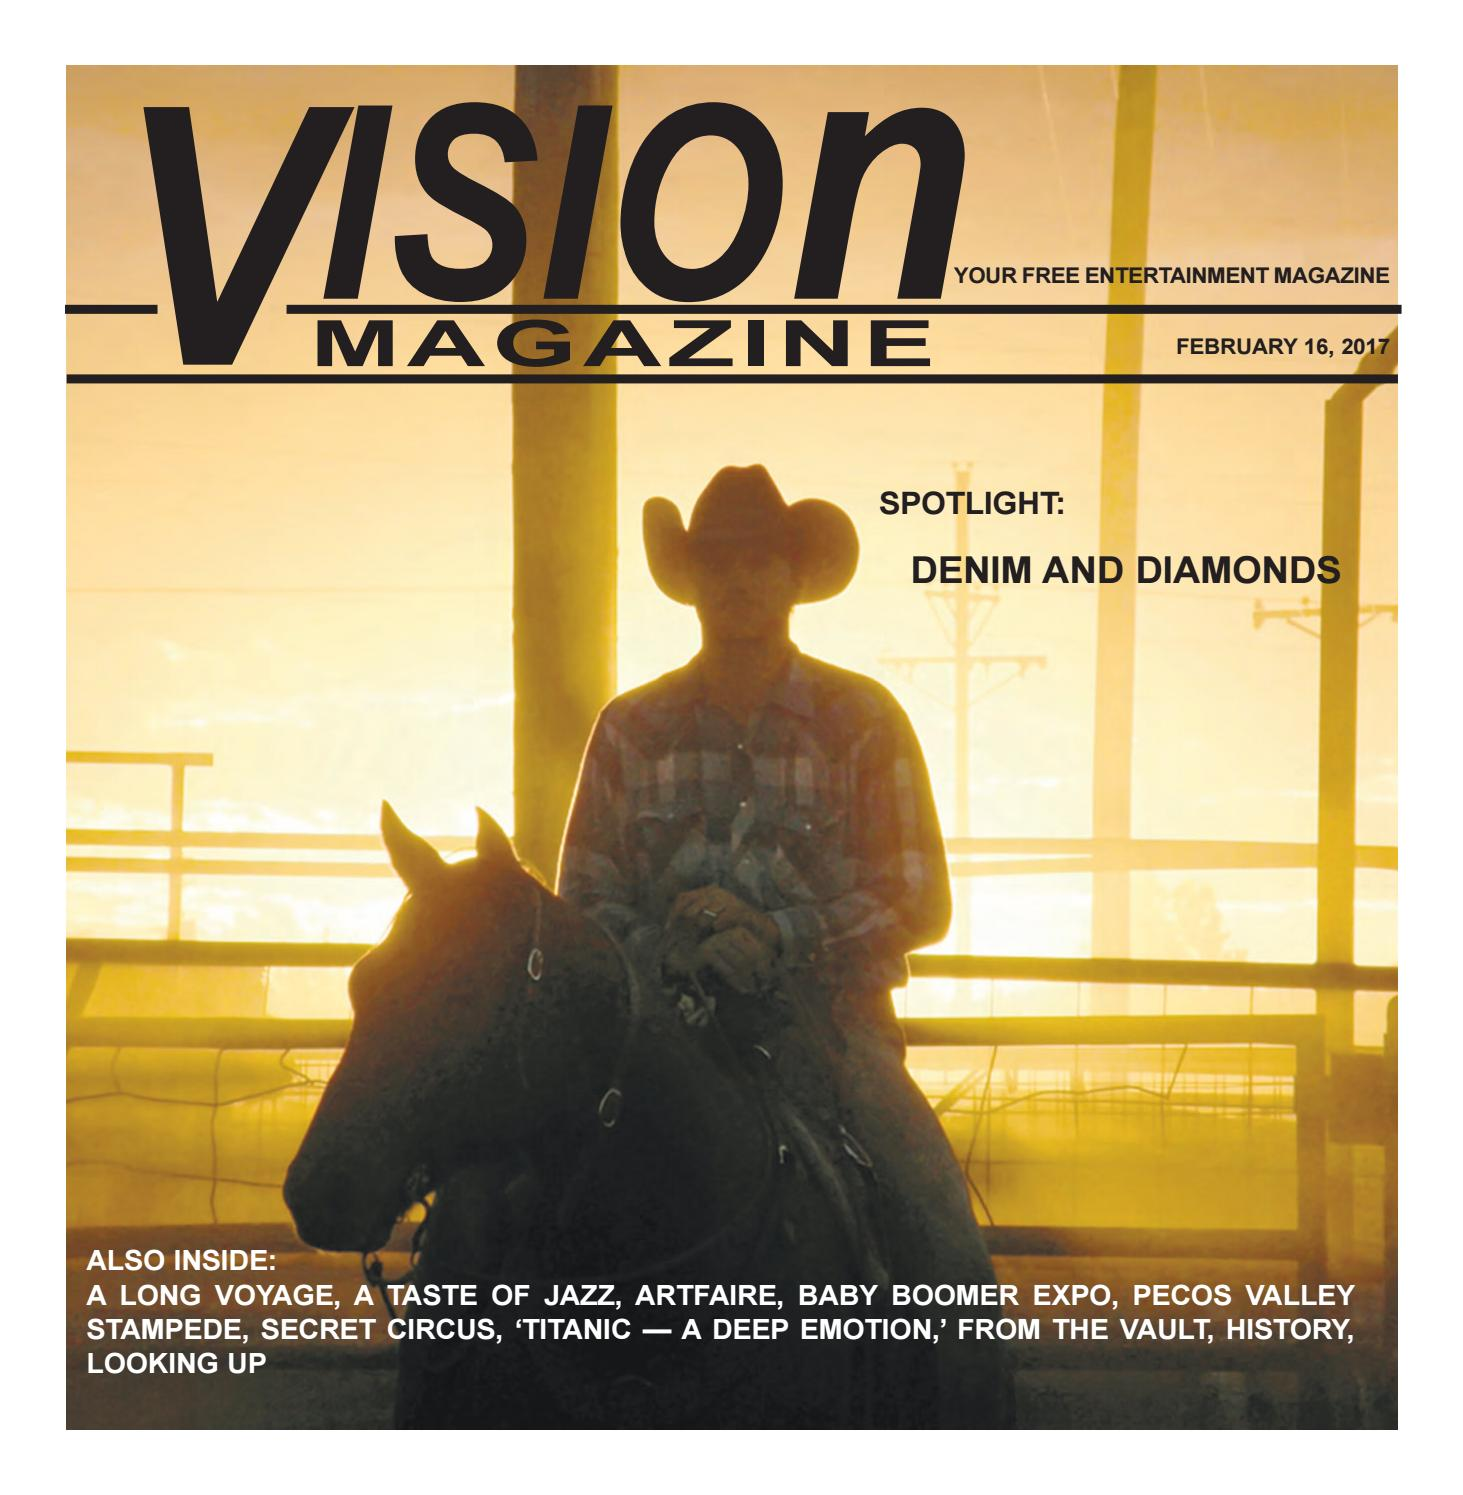 Vision magazine feb 16 2017 by roswell daily record issuu stopboris Gallery